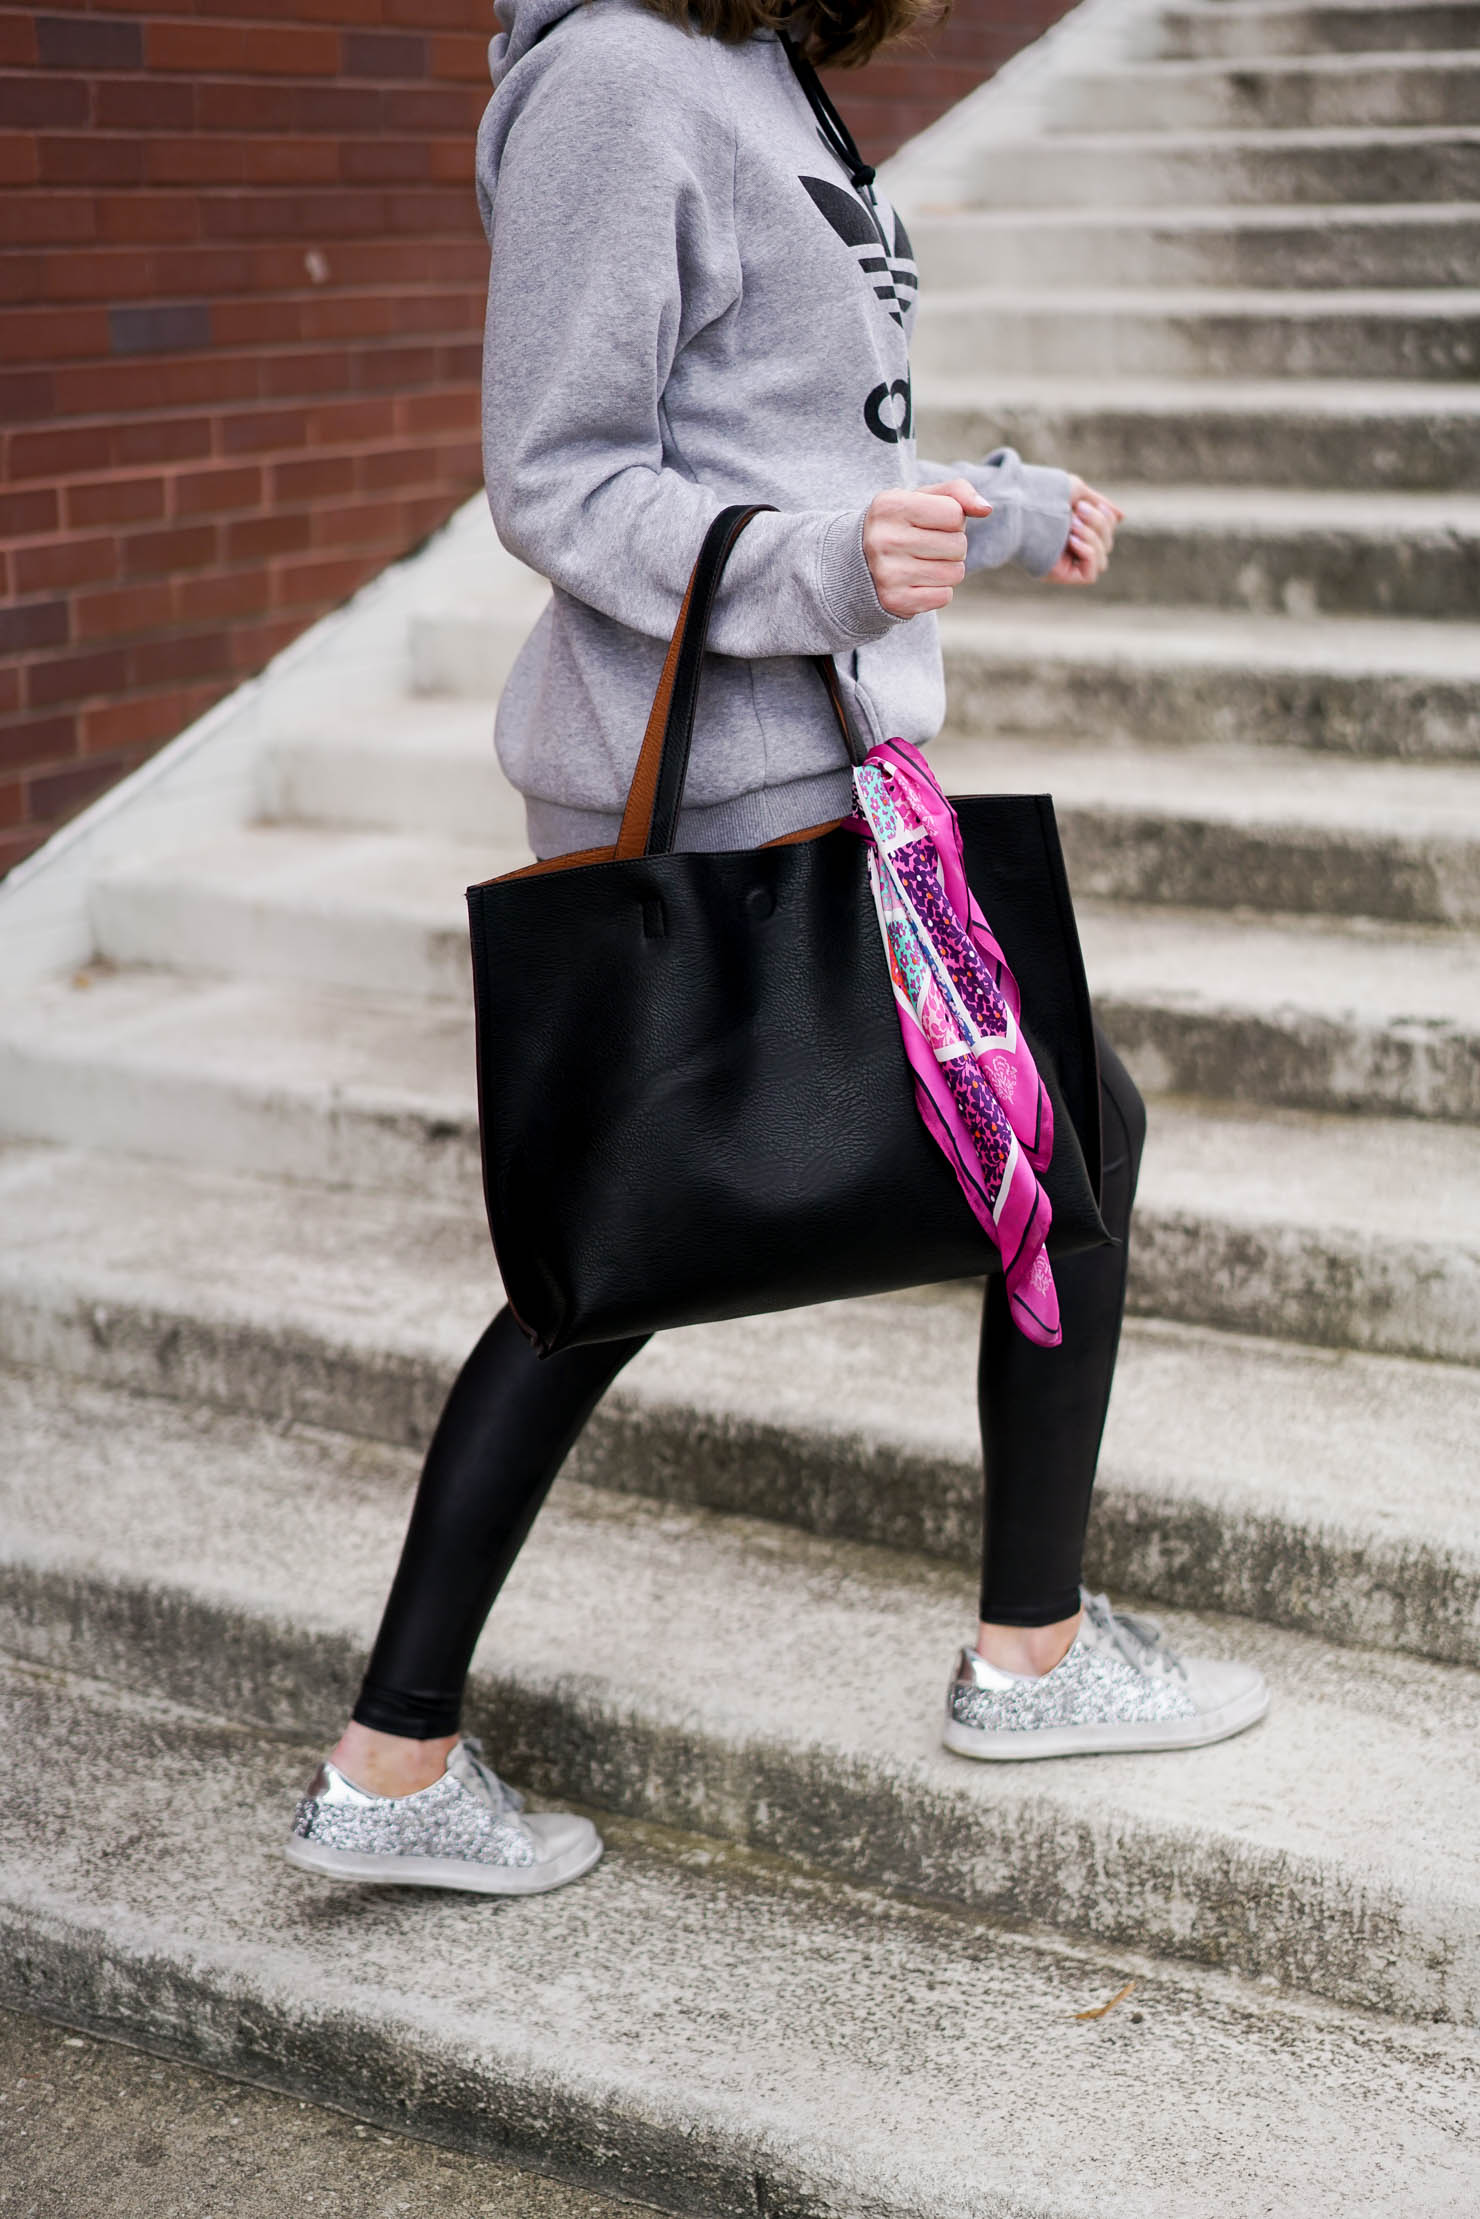 athleisure trend, my love of athleisure, the faux leather leggings that will change your life, faux leather leggings anyone can pull off, the most slimming legging, sucks you in but still comfortable